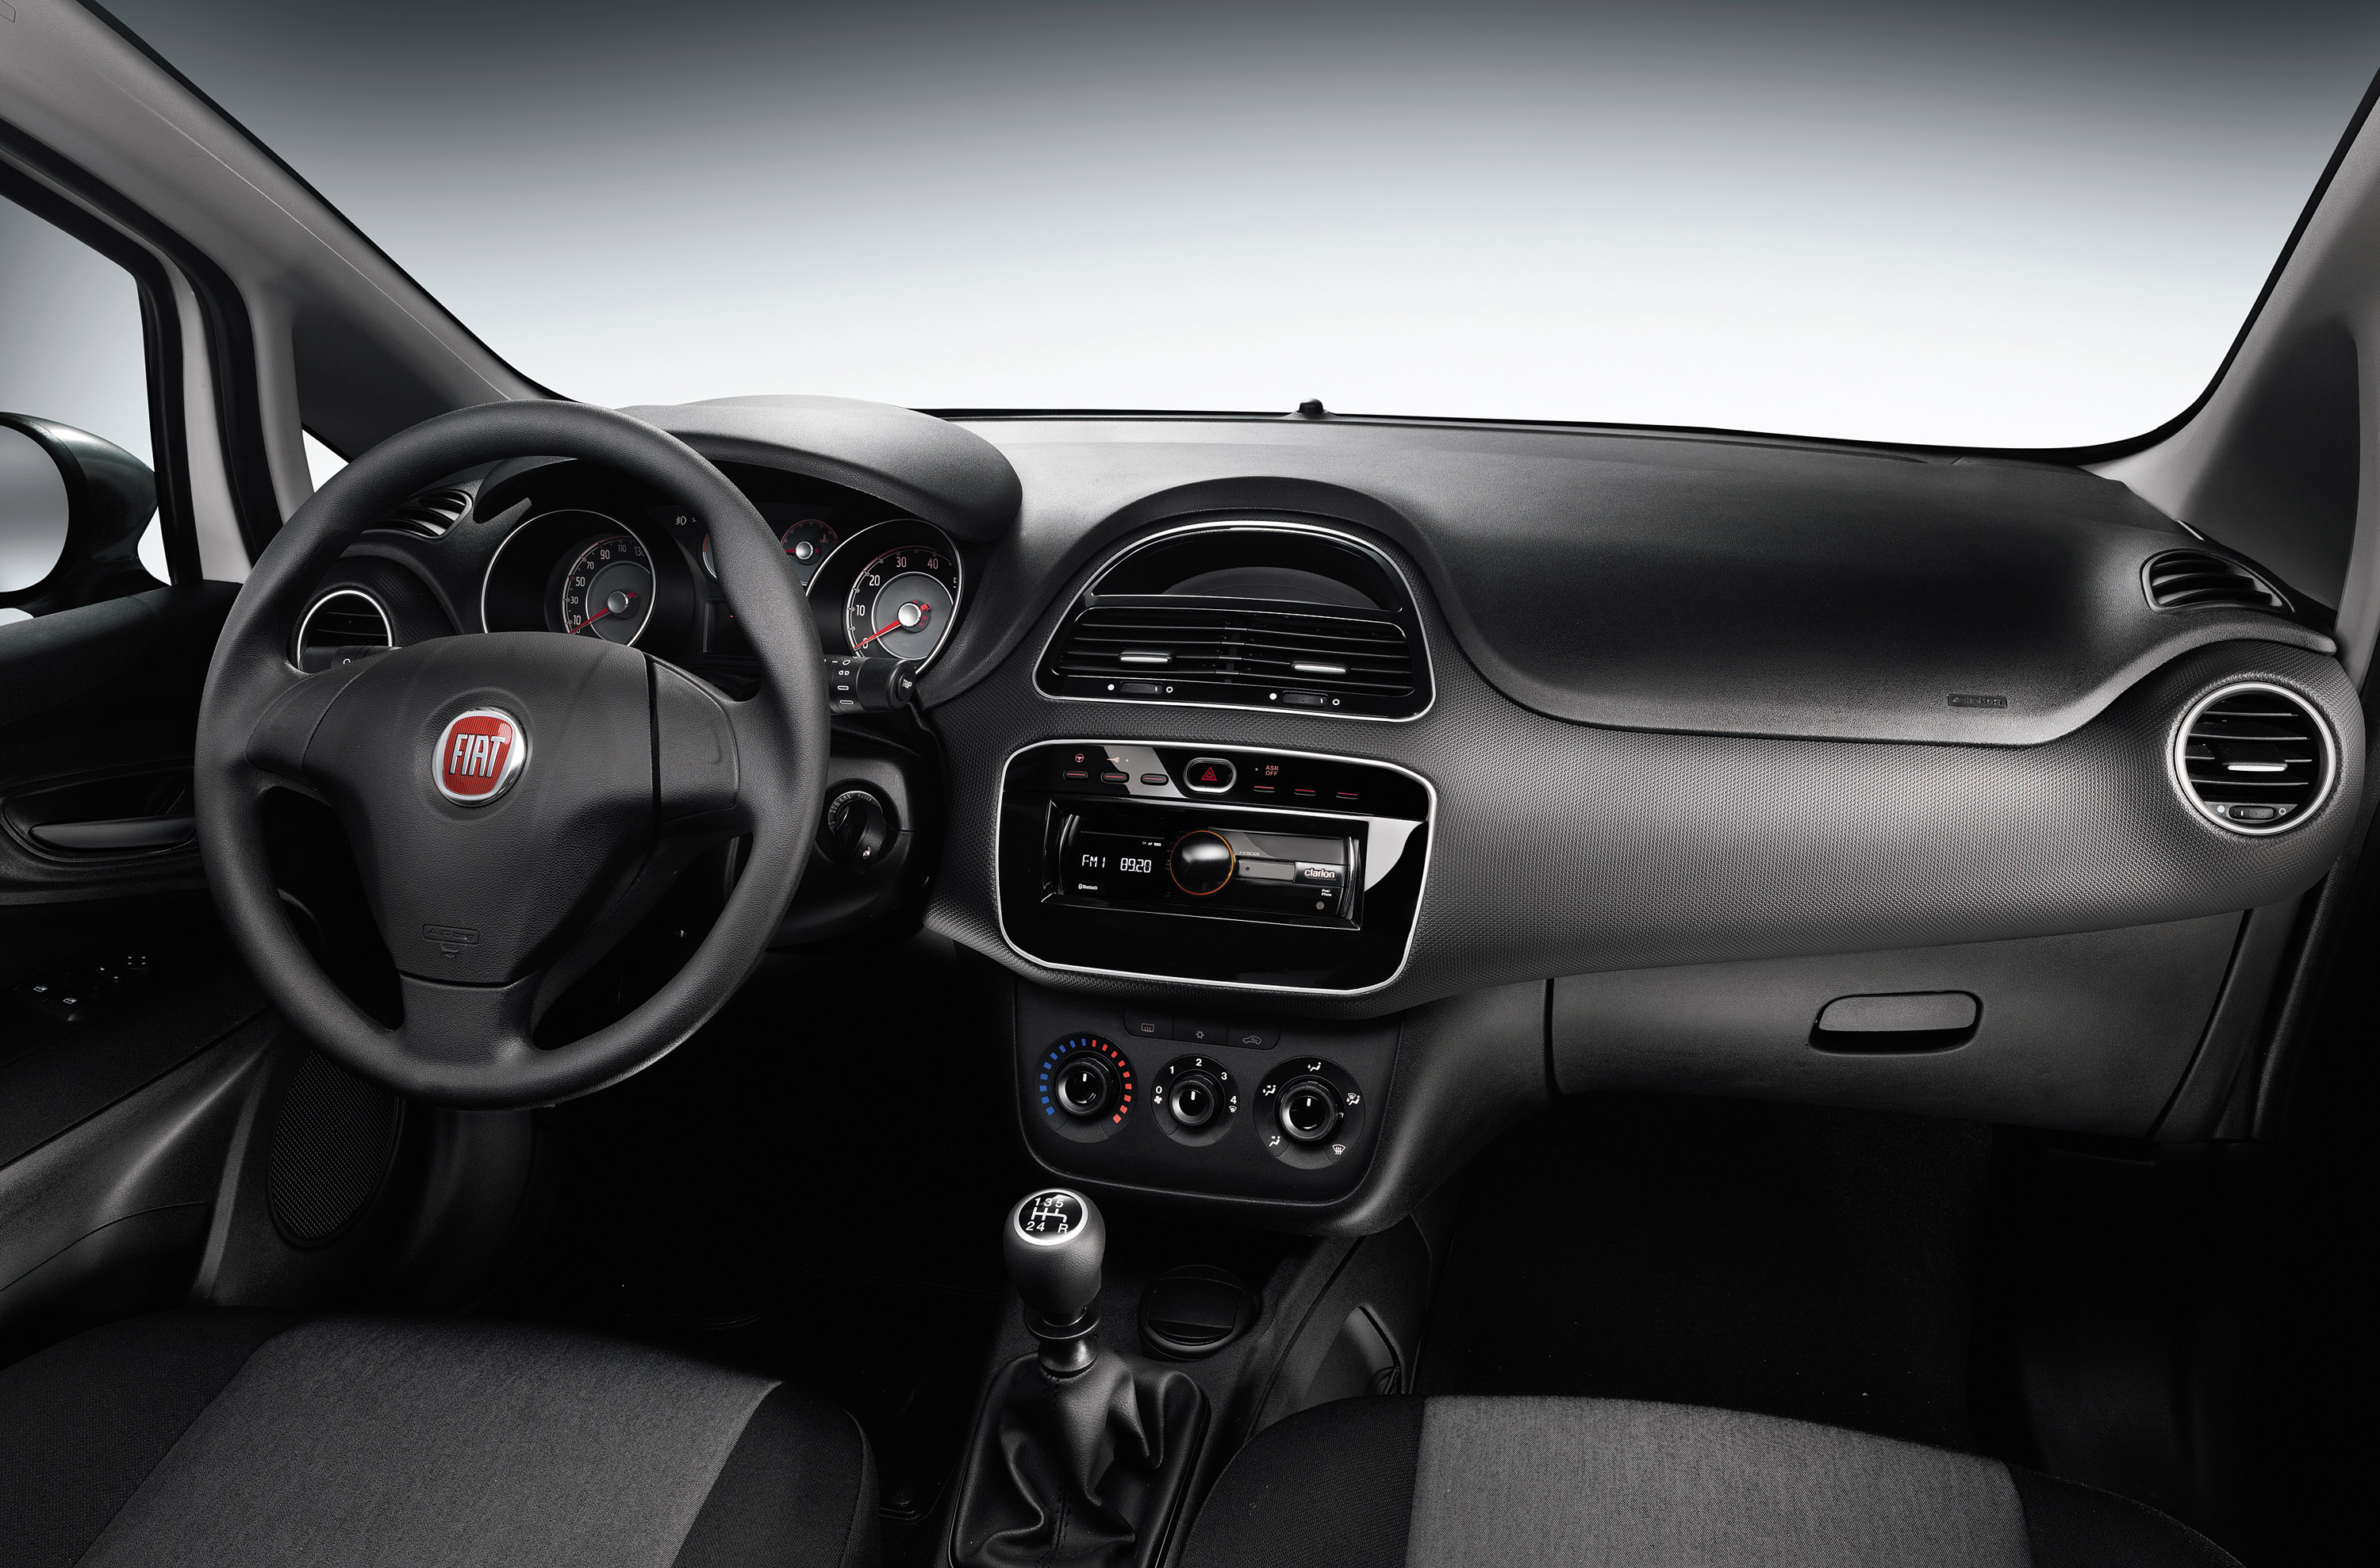 Black Car Wallpapers For Mobile 2014 Fiat Punto Young Price